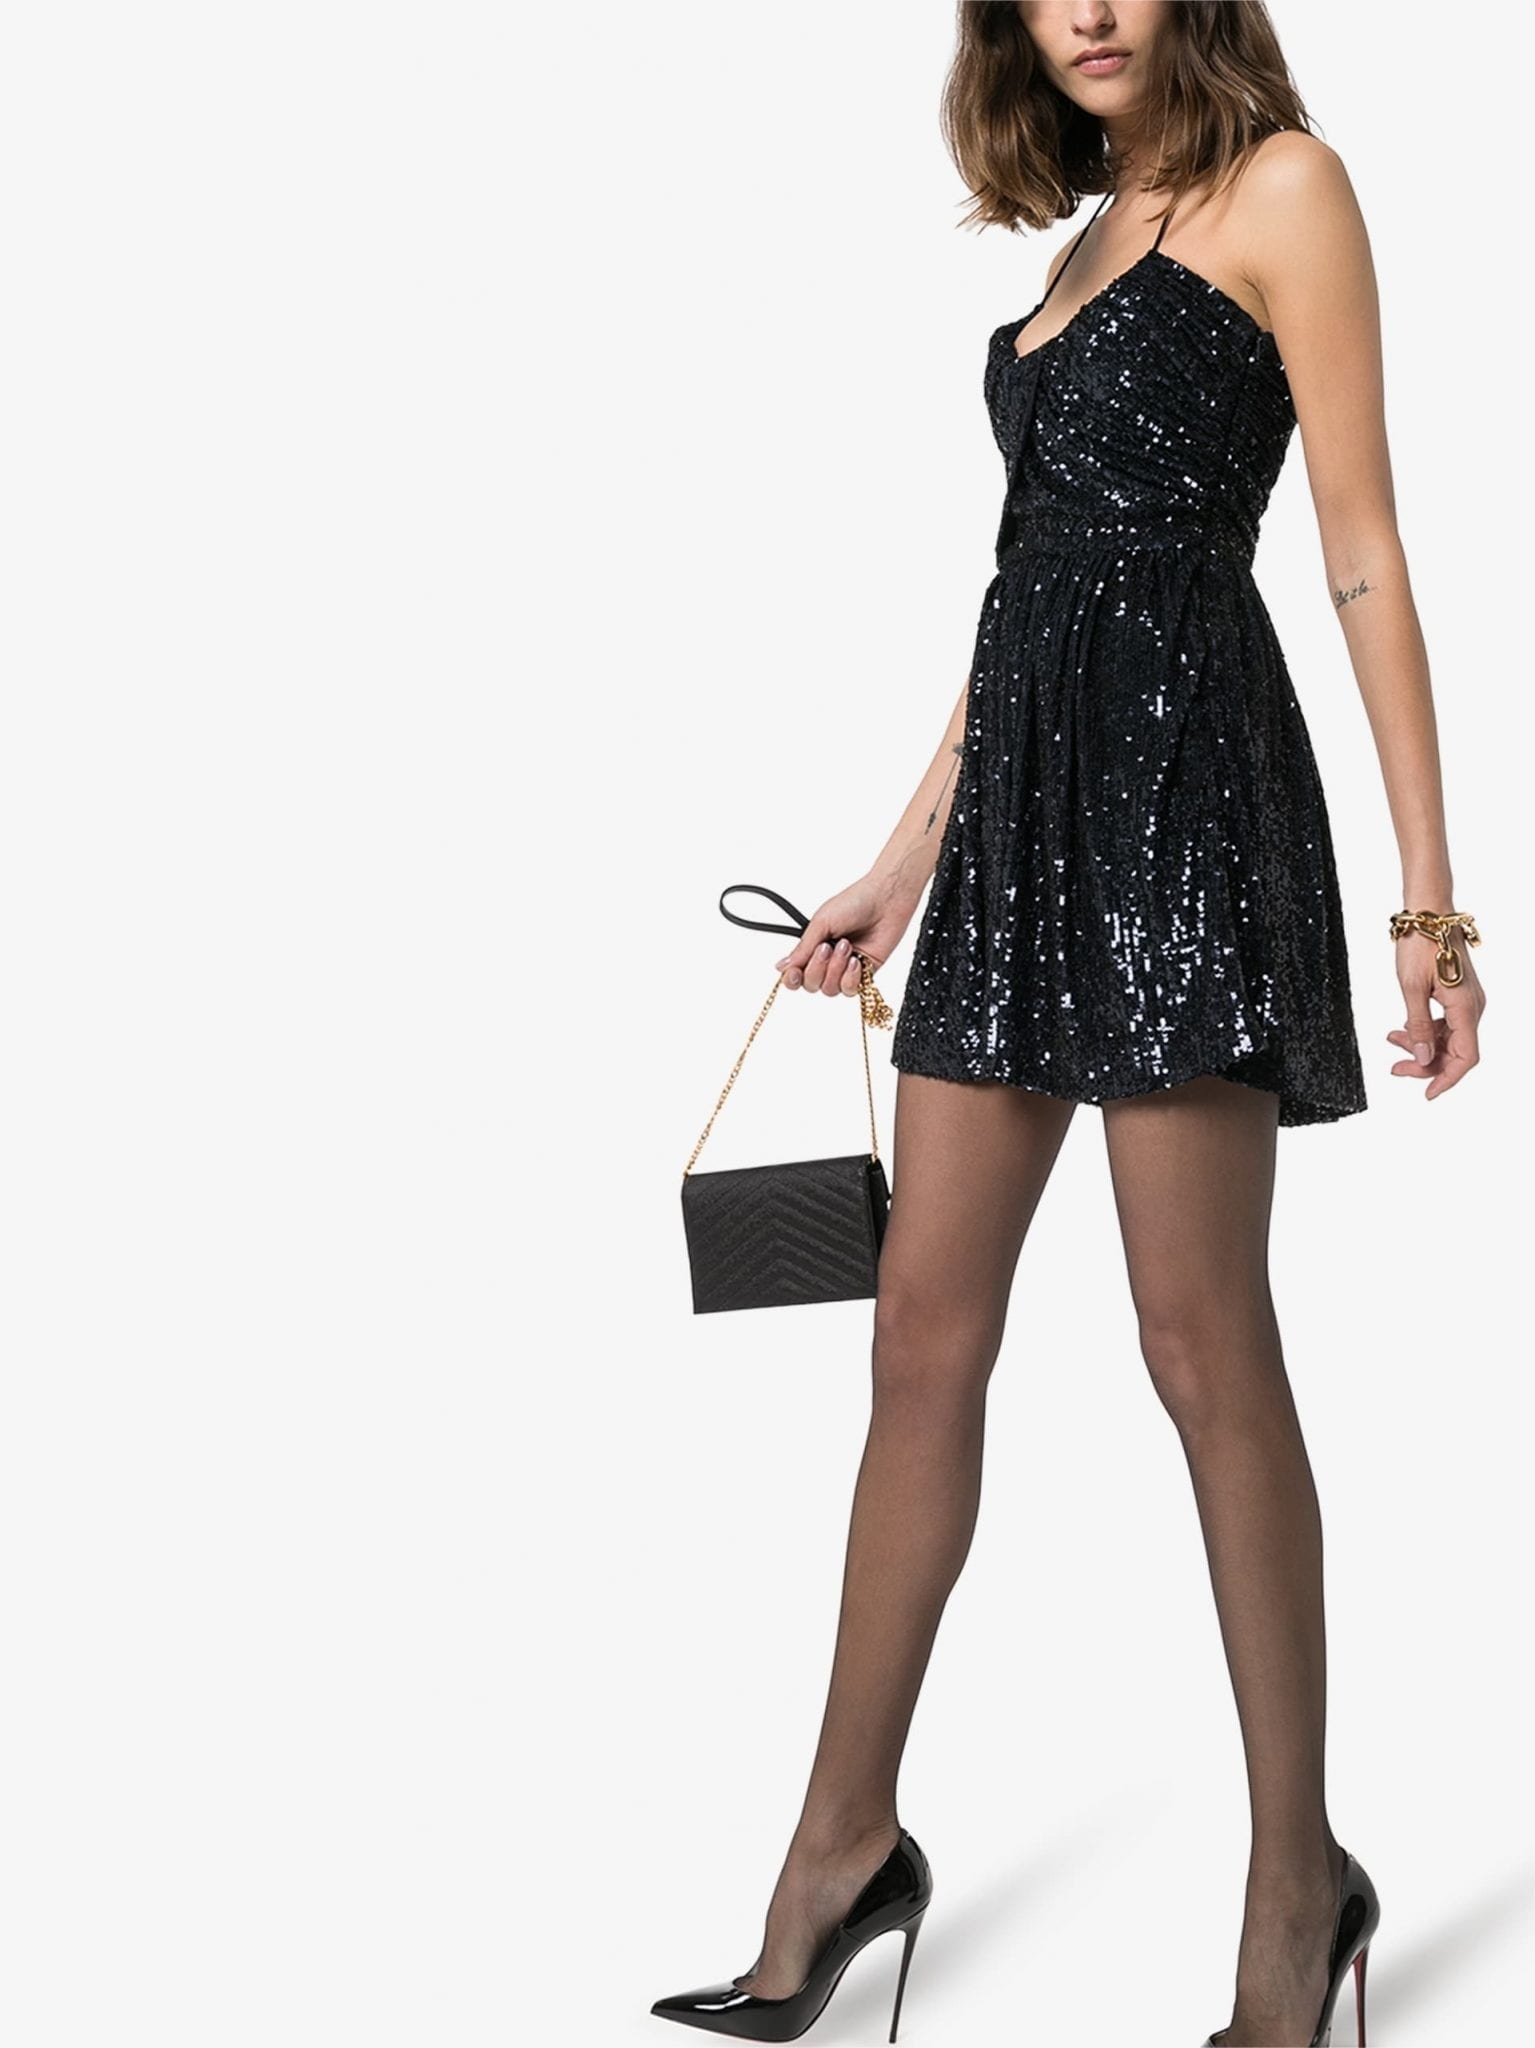 SAINT LAURENT Halterneck Sequin Mini Dress